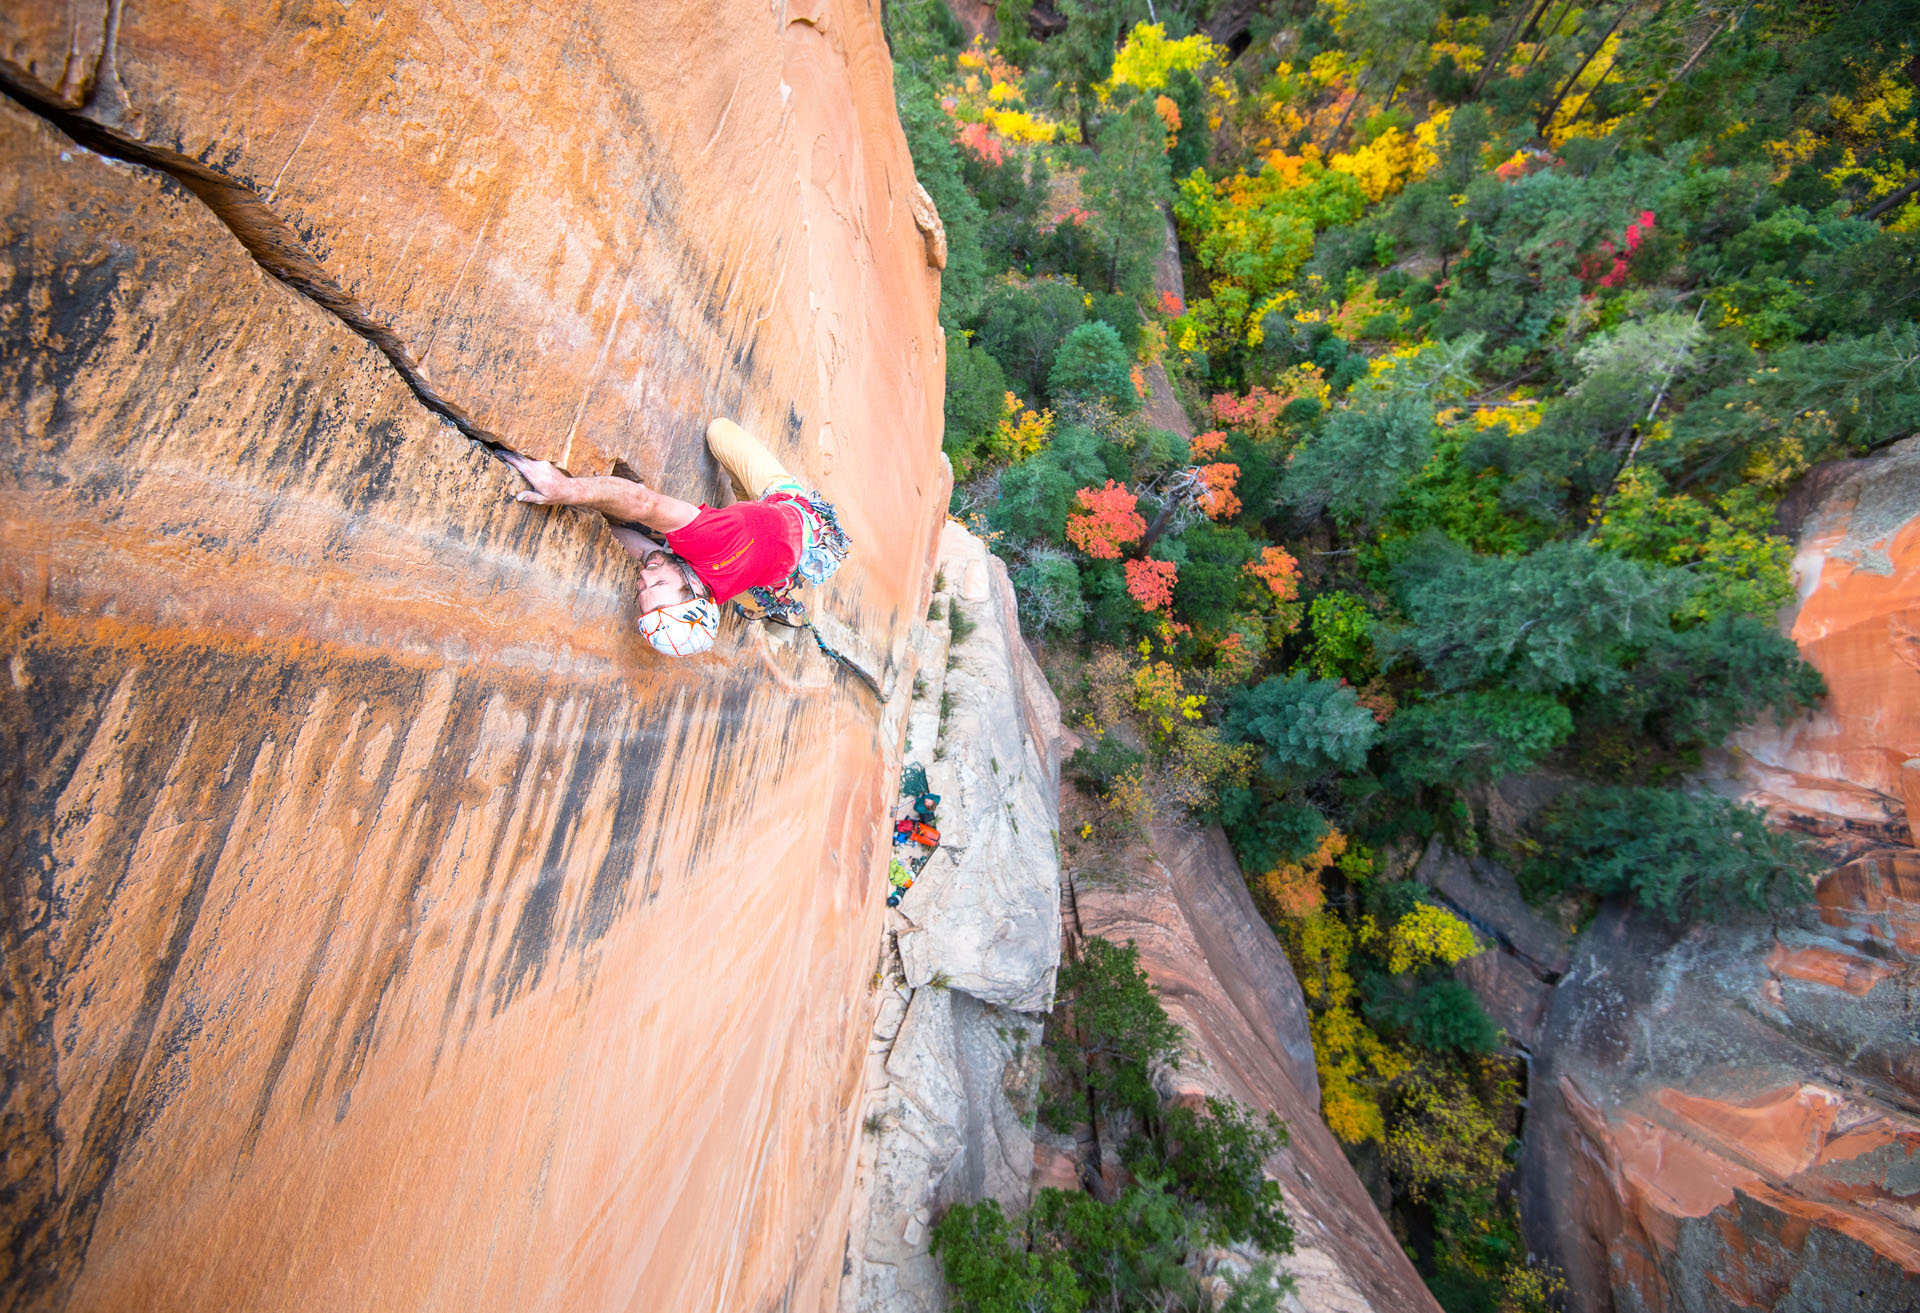 Jeff Snyder on the Third Pitch of Life Without Parole (5.12-)